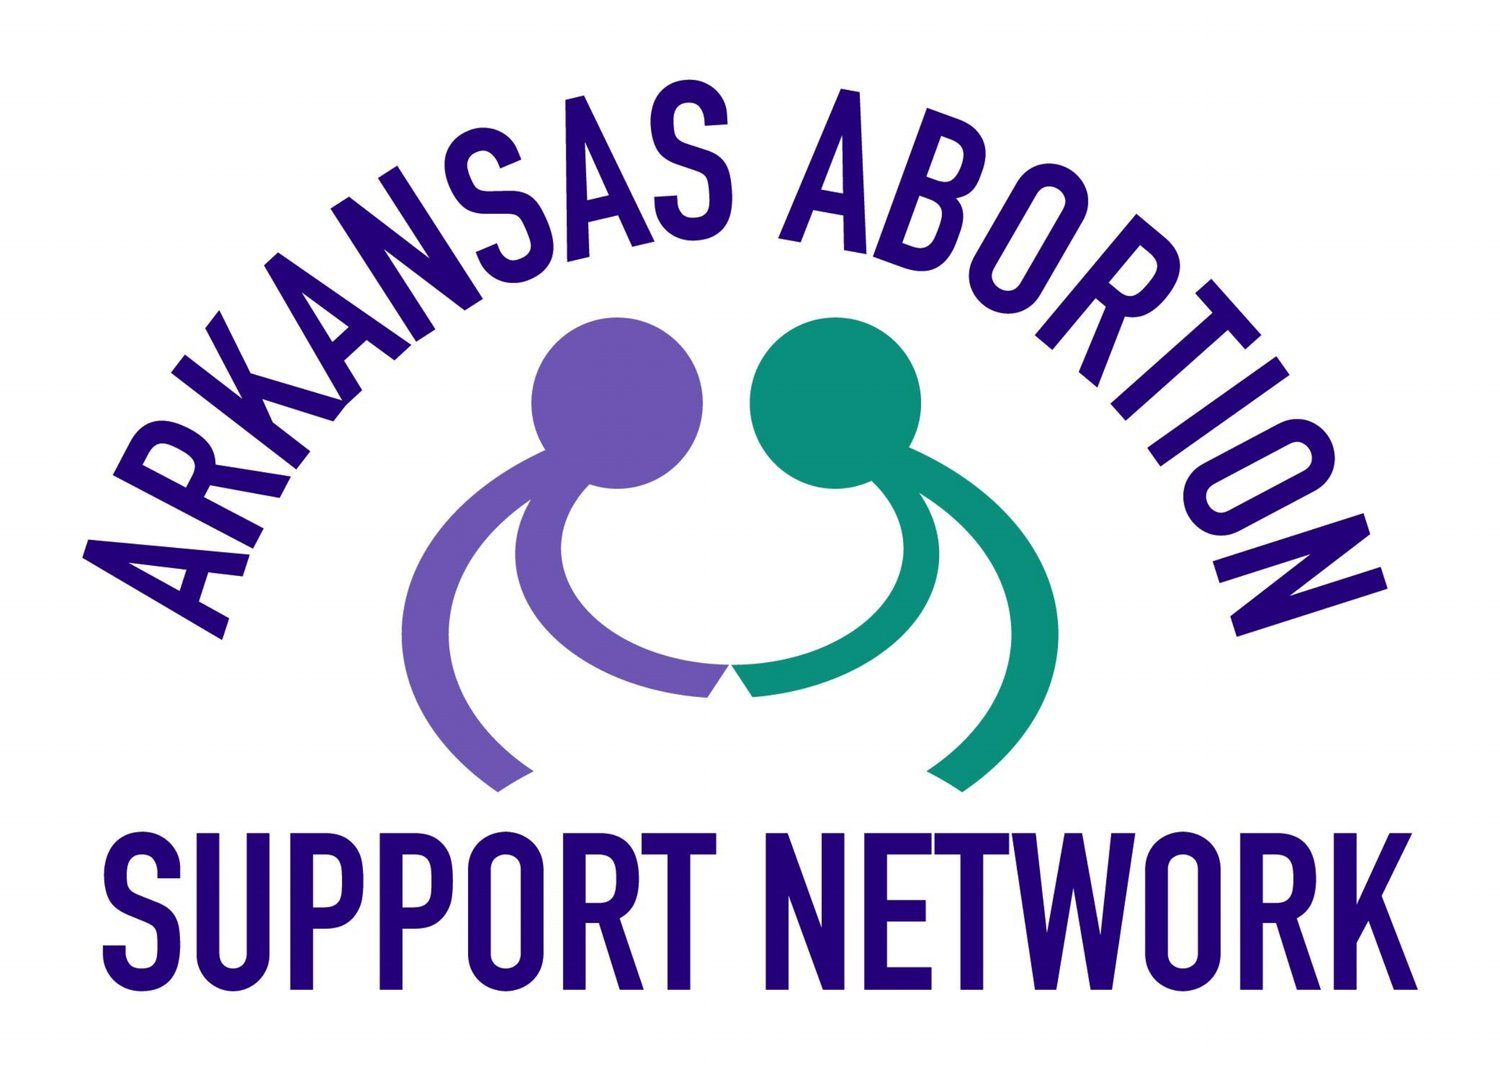 Arkansas Abortion Support Network